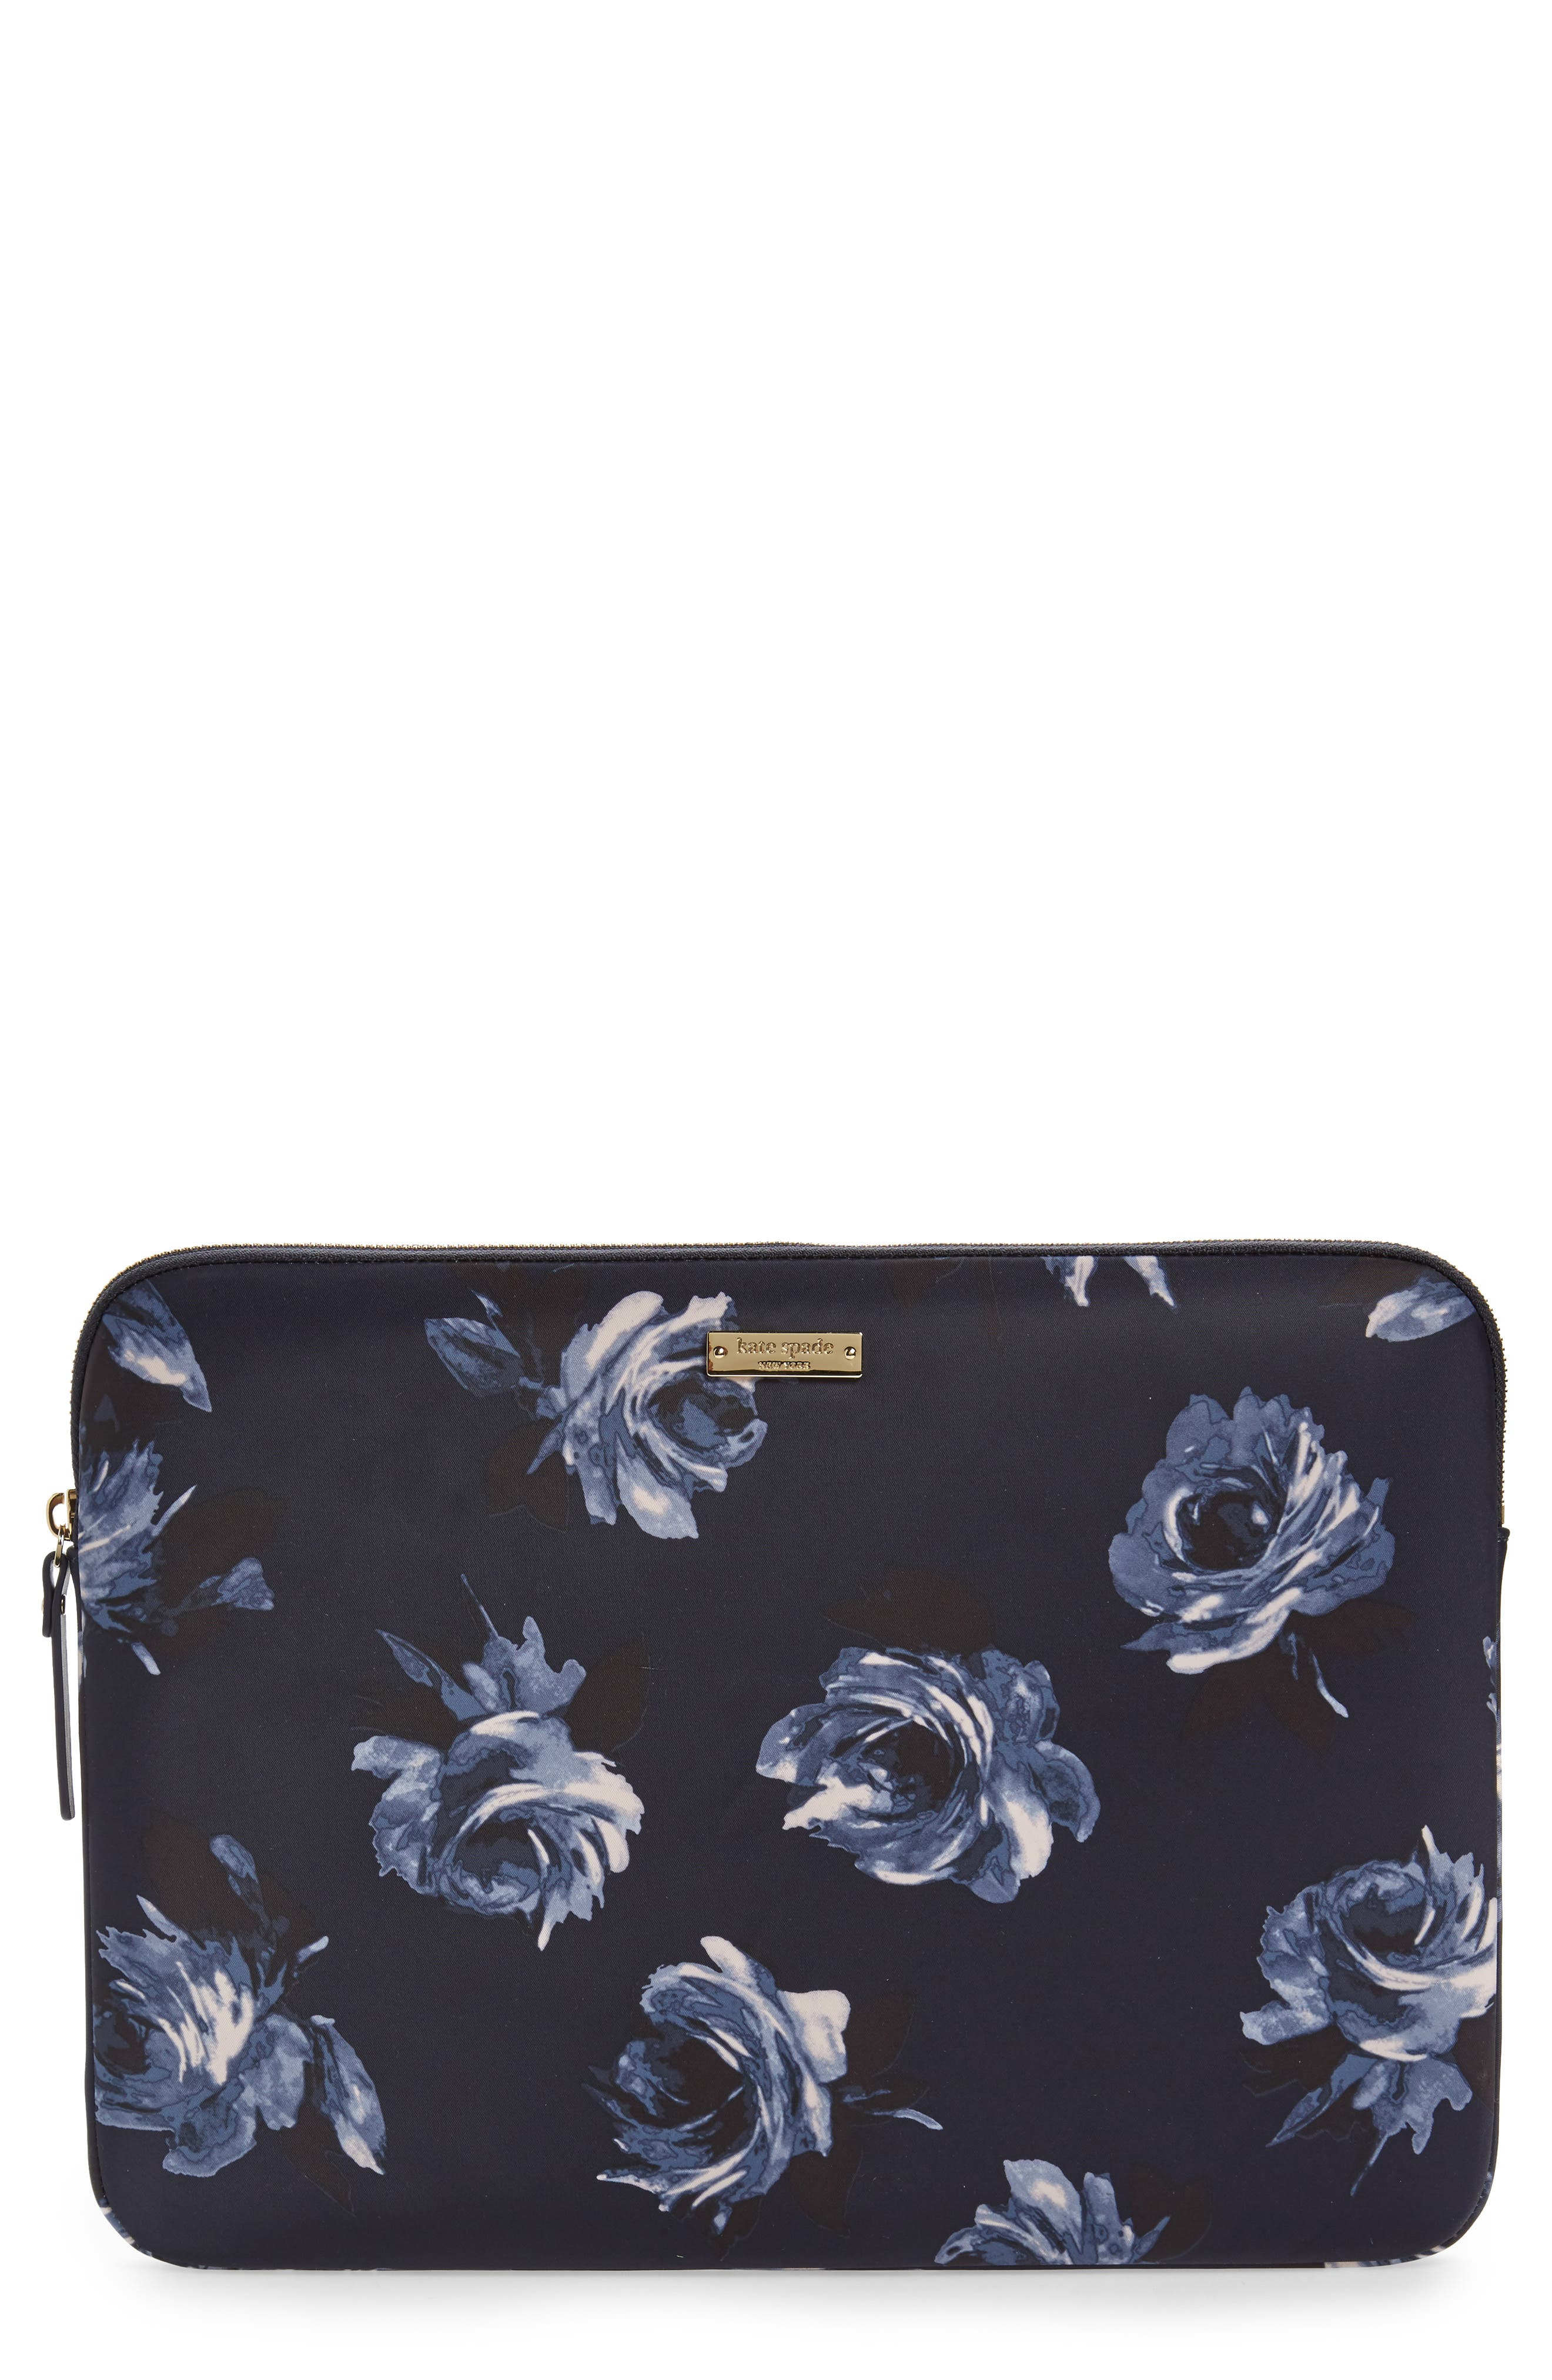 night rose 13-Inch laptop sleeve,                         Main,                         color, 400